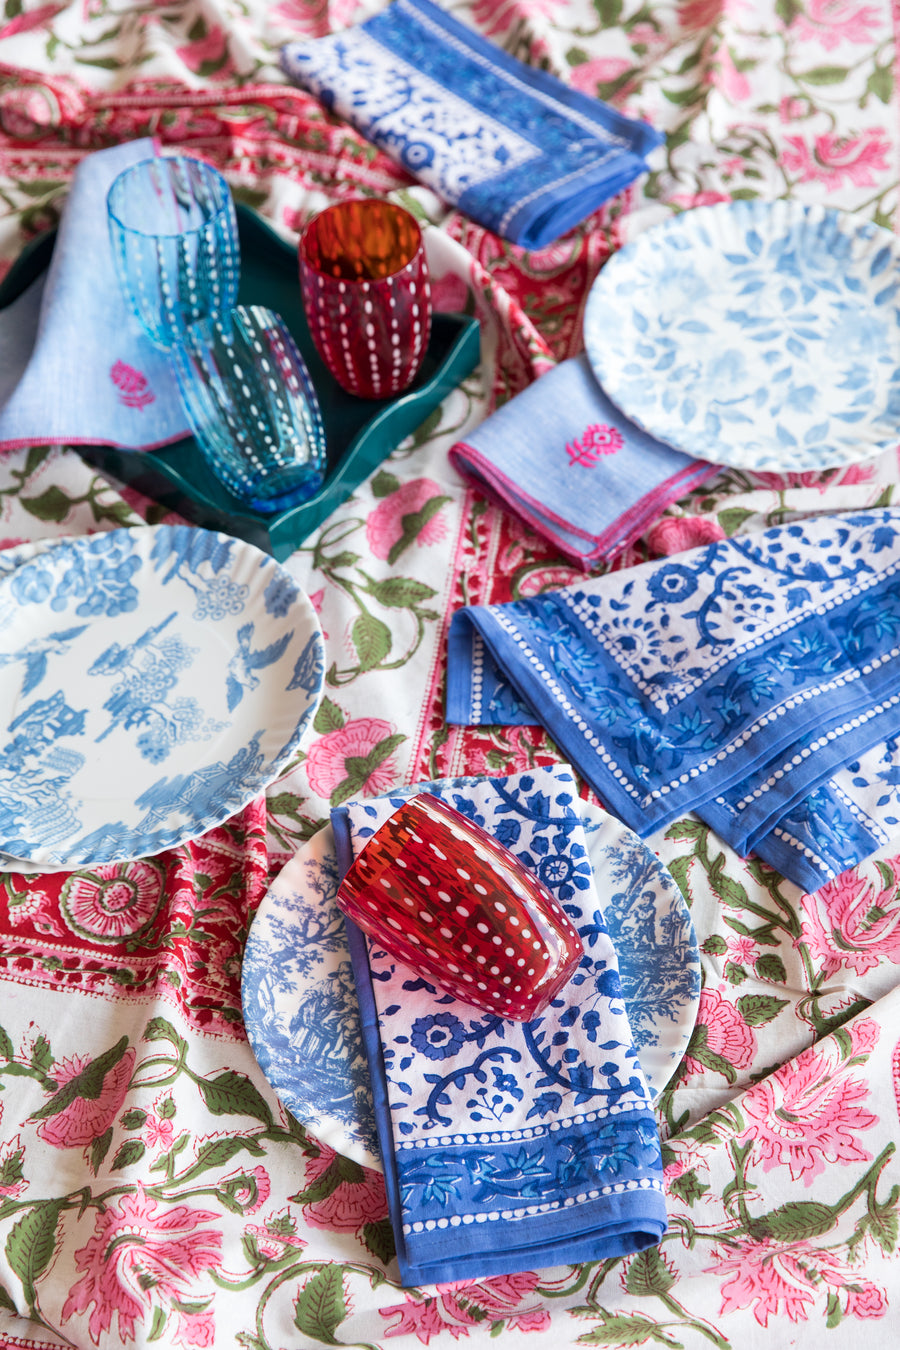 Furbish Studio - Raja Blue Floral Napkins styled on a tablescape